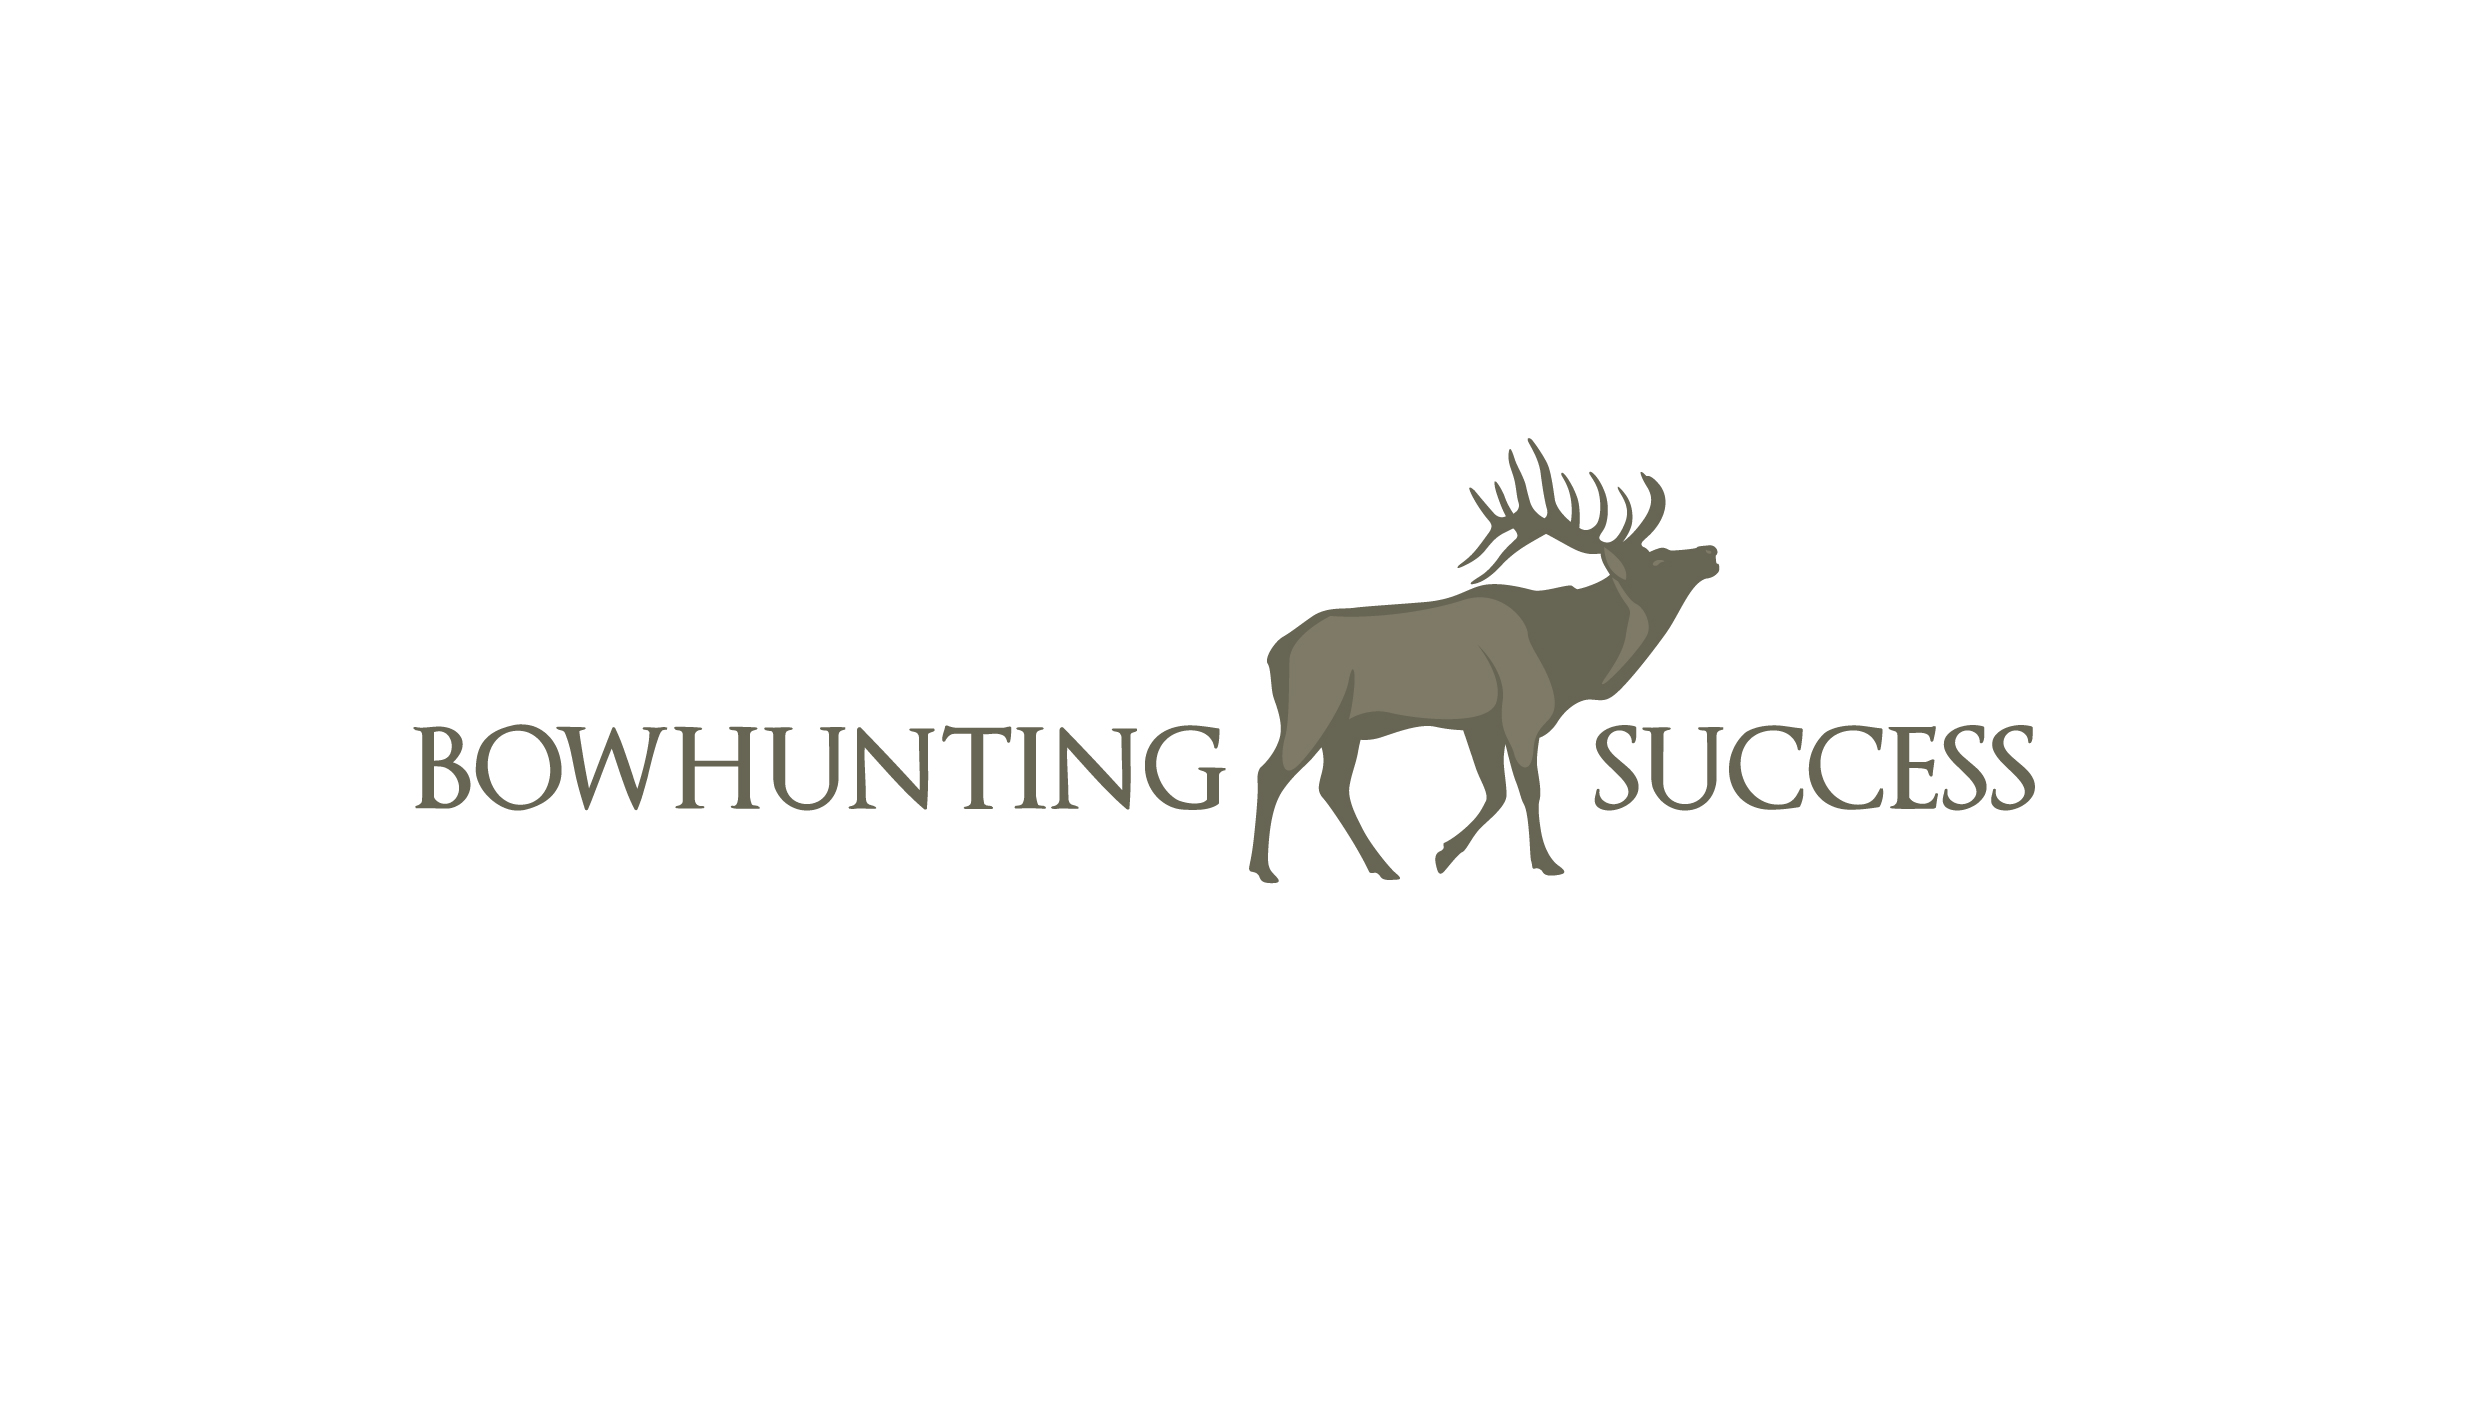 Bowhunting Success